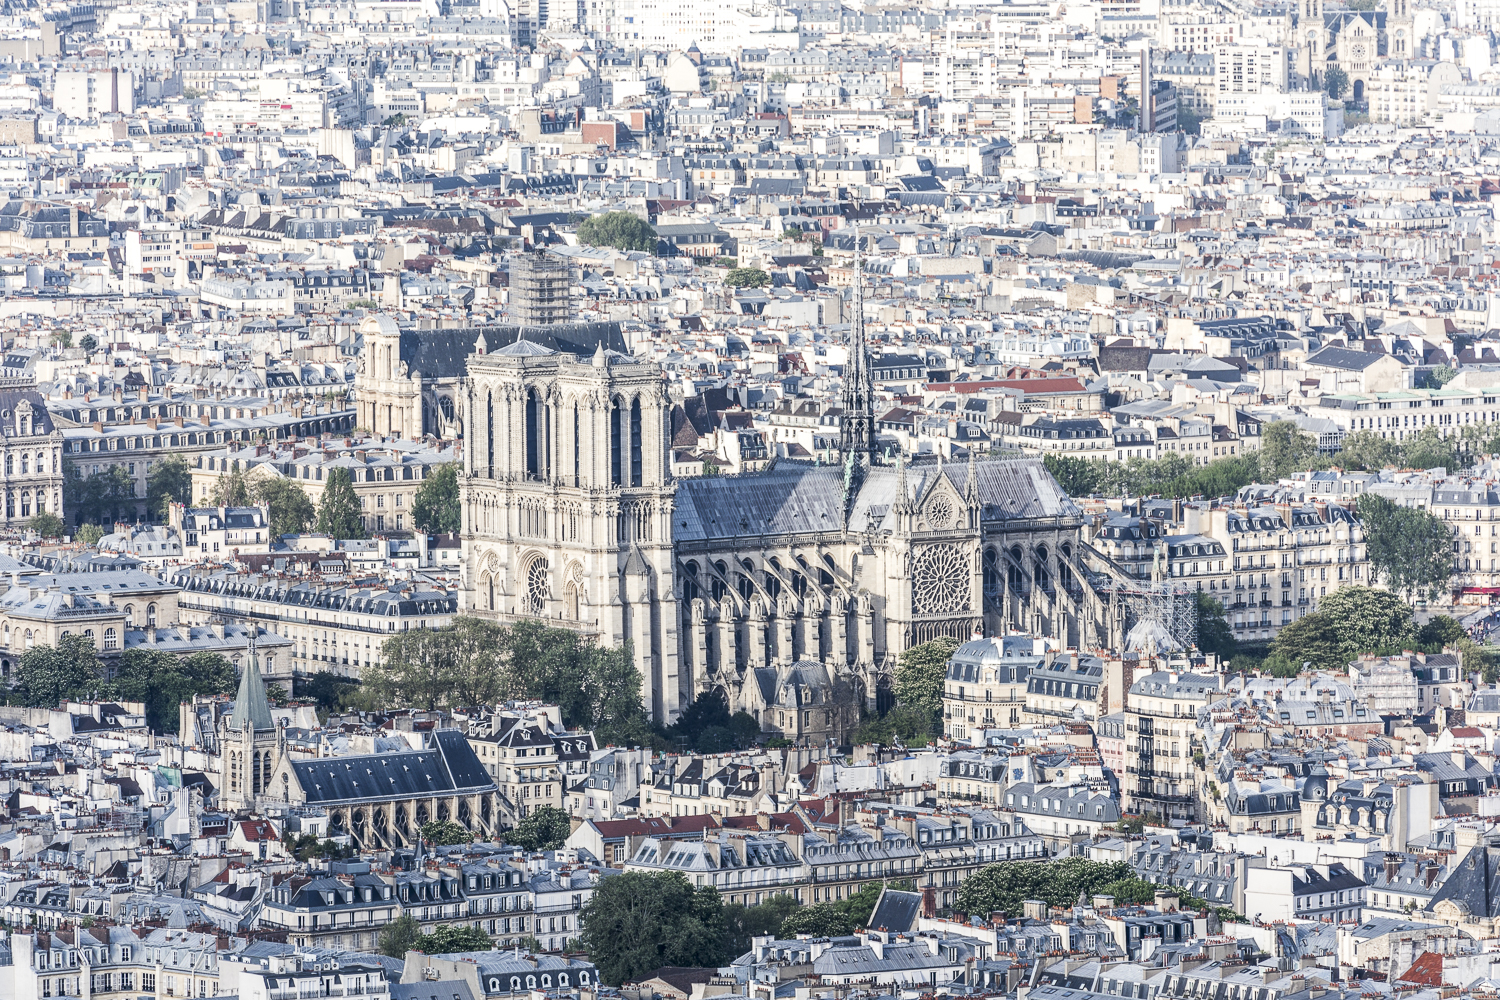 Copy of Notre-Dame at the Heart of Paris